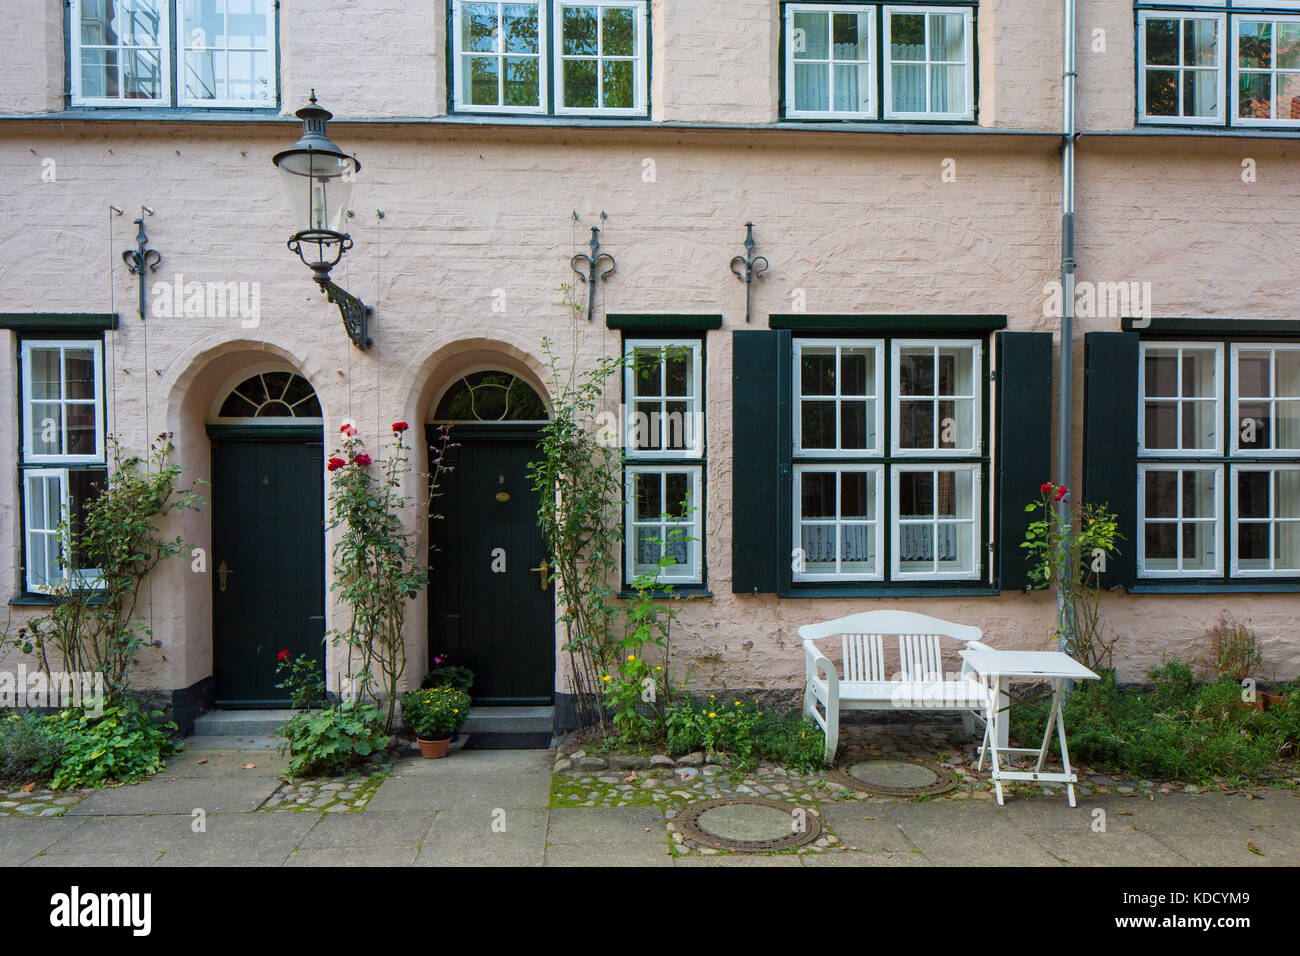 Füchtingshof / Fuechting's Courtyard in the Hanseatic town Lübeck / Luebeck, Schleswig-Holstein, Germany - Stock Image